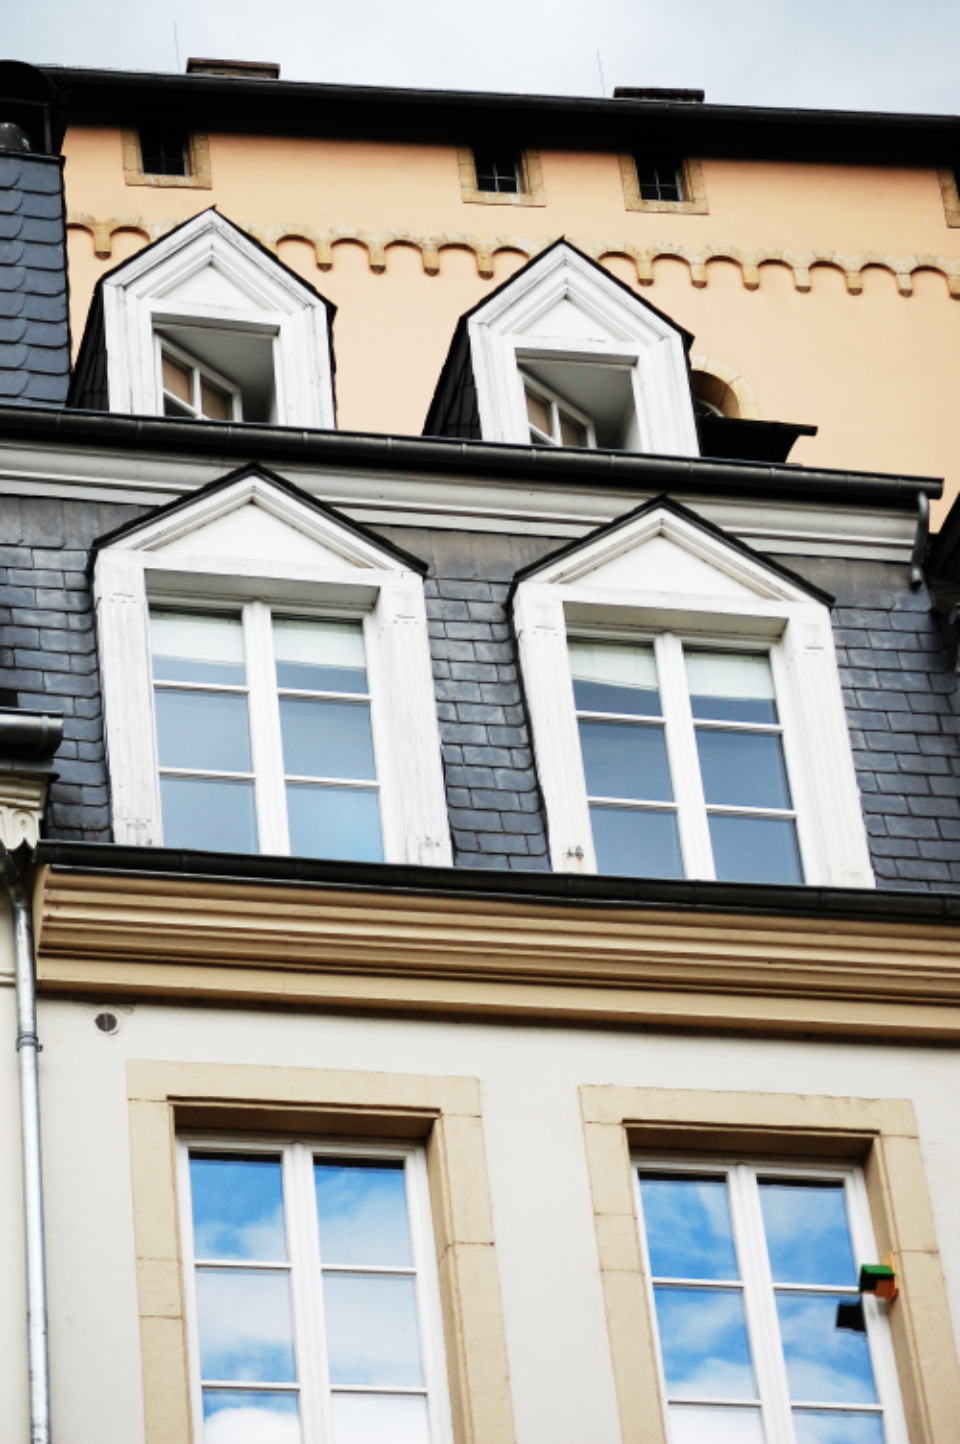 luxembourg windows houses